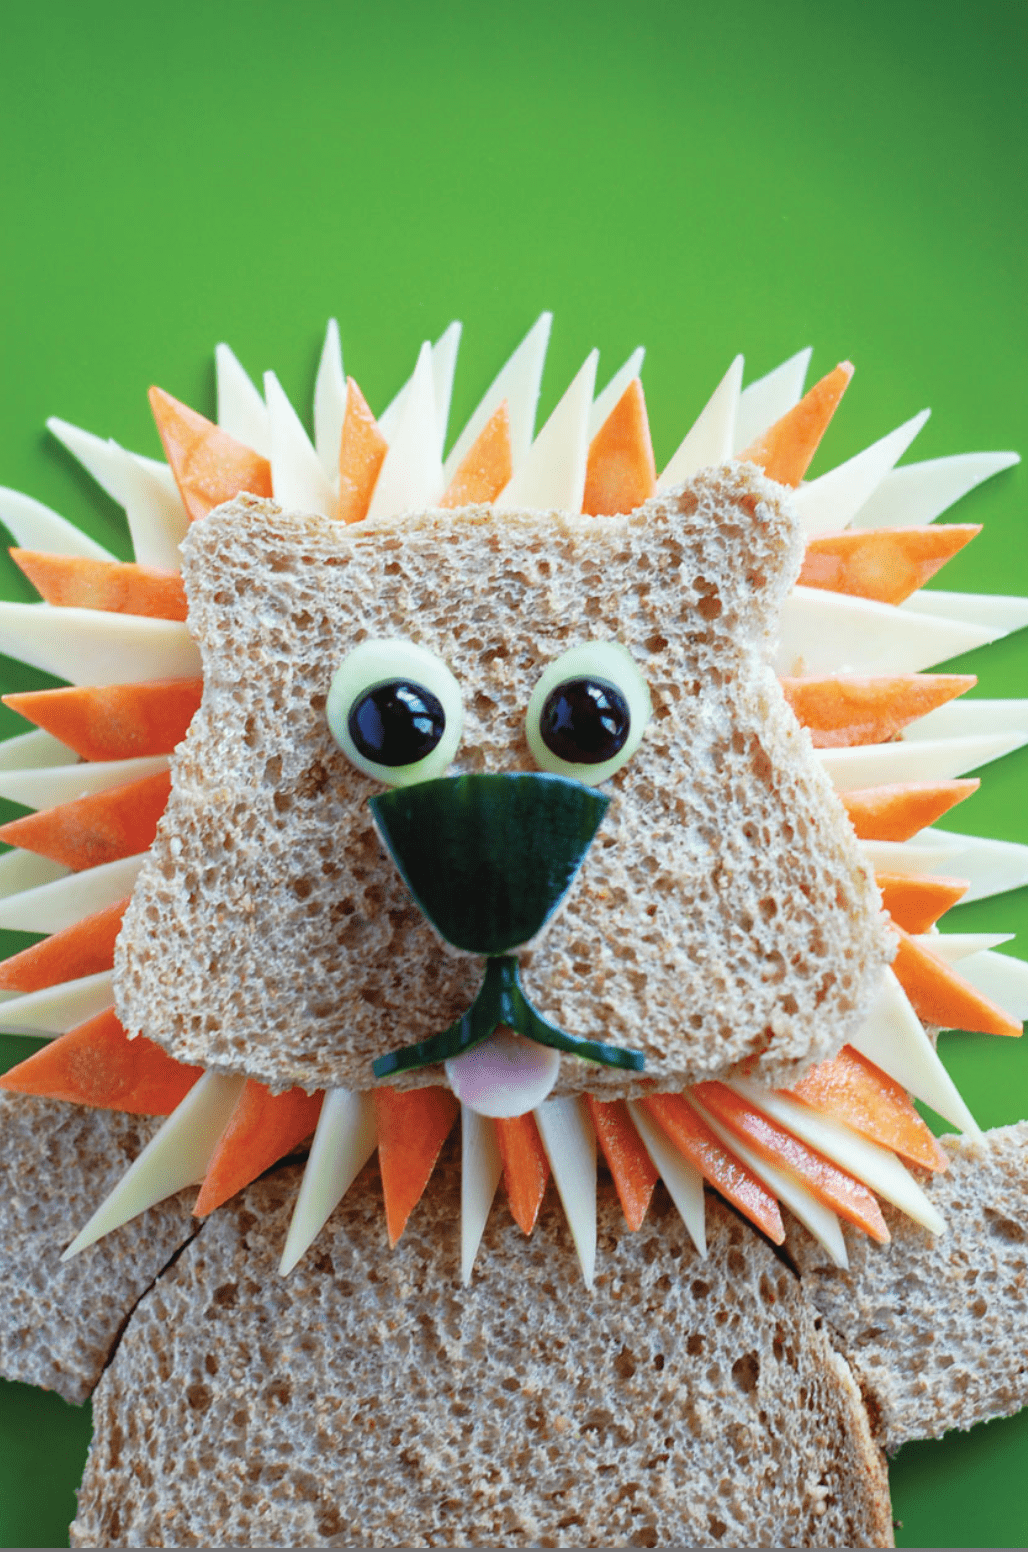 Funky packed lunch: King Of The Jungle lion sandwich